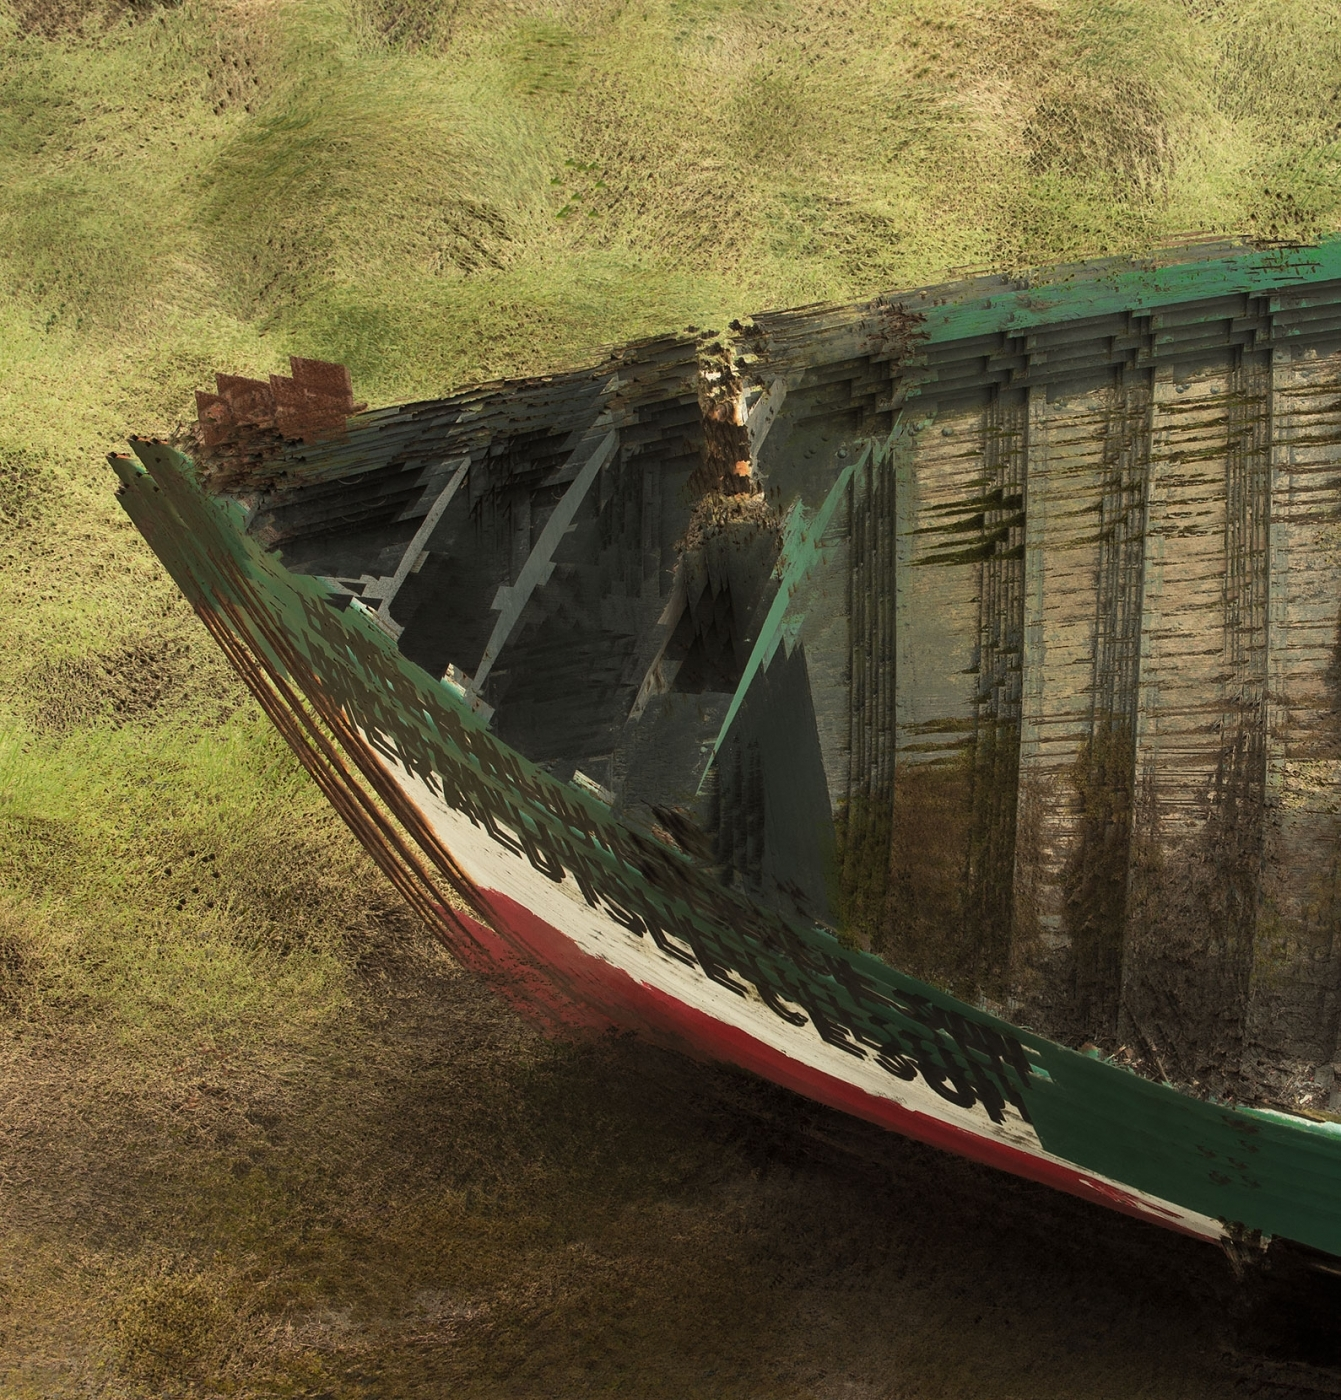 A boat hull shot again using 9 blended images, all made in camera